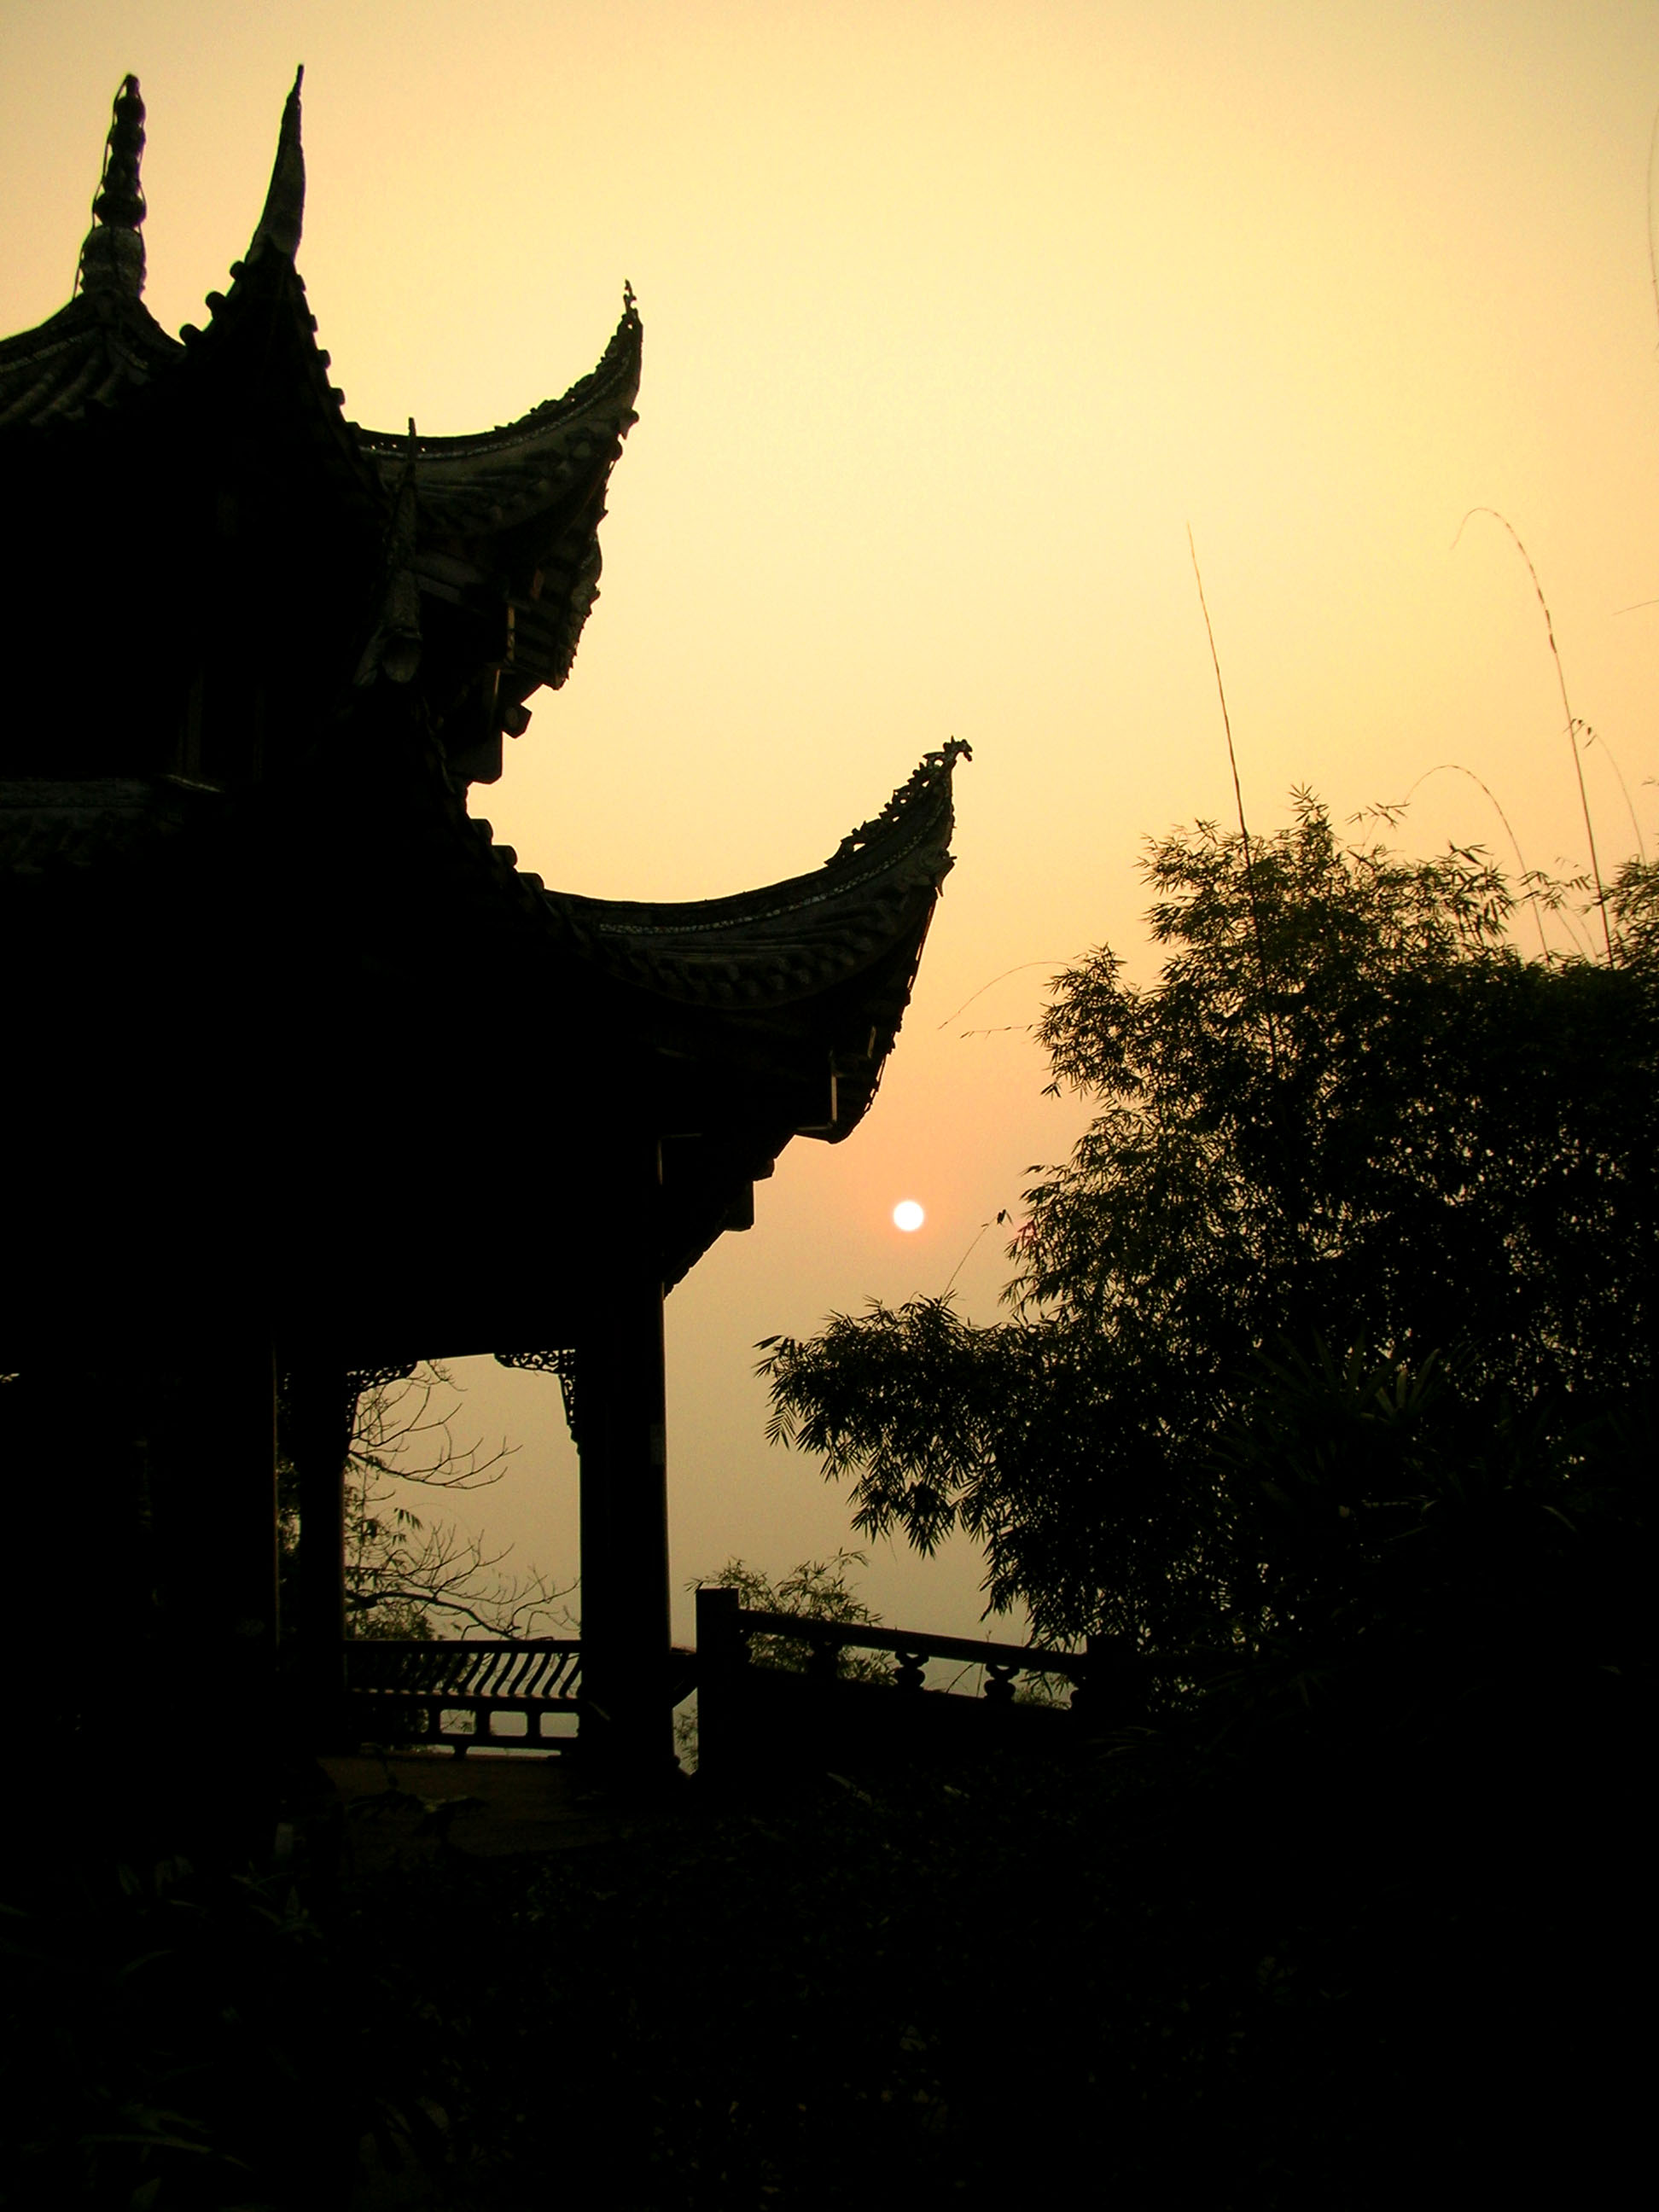 The sun setting behind a pagoda and some bamboo above the Giant Buddha's head.